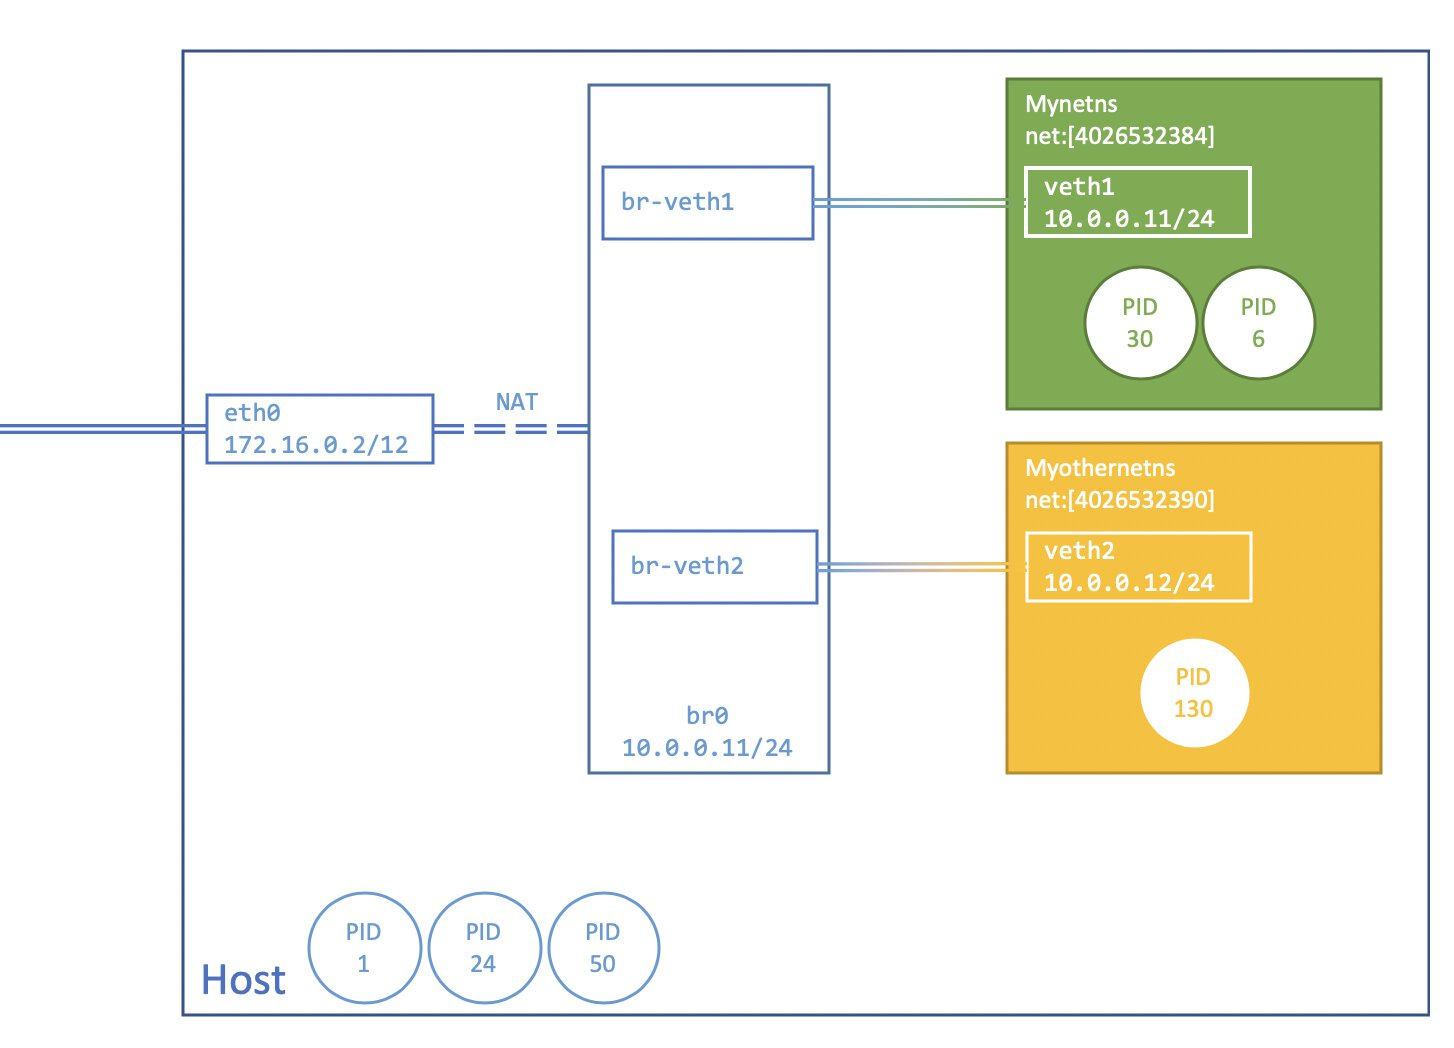 Image showing a final overview of the networking topology. eth0, br-veth1, br-veth2 are part of the initial namespace, while veth1 and veth2 are part of separate network namespaces. br-veth1 and br-veth2 are connected to the bridge, br0. NAT rules are enabled to ensure that packets find their way out of the host.